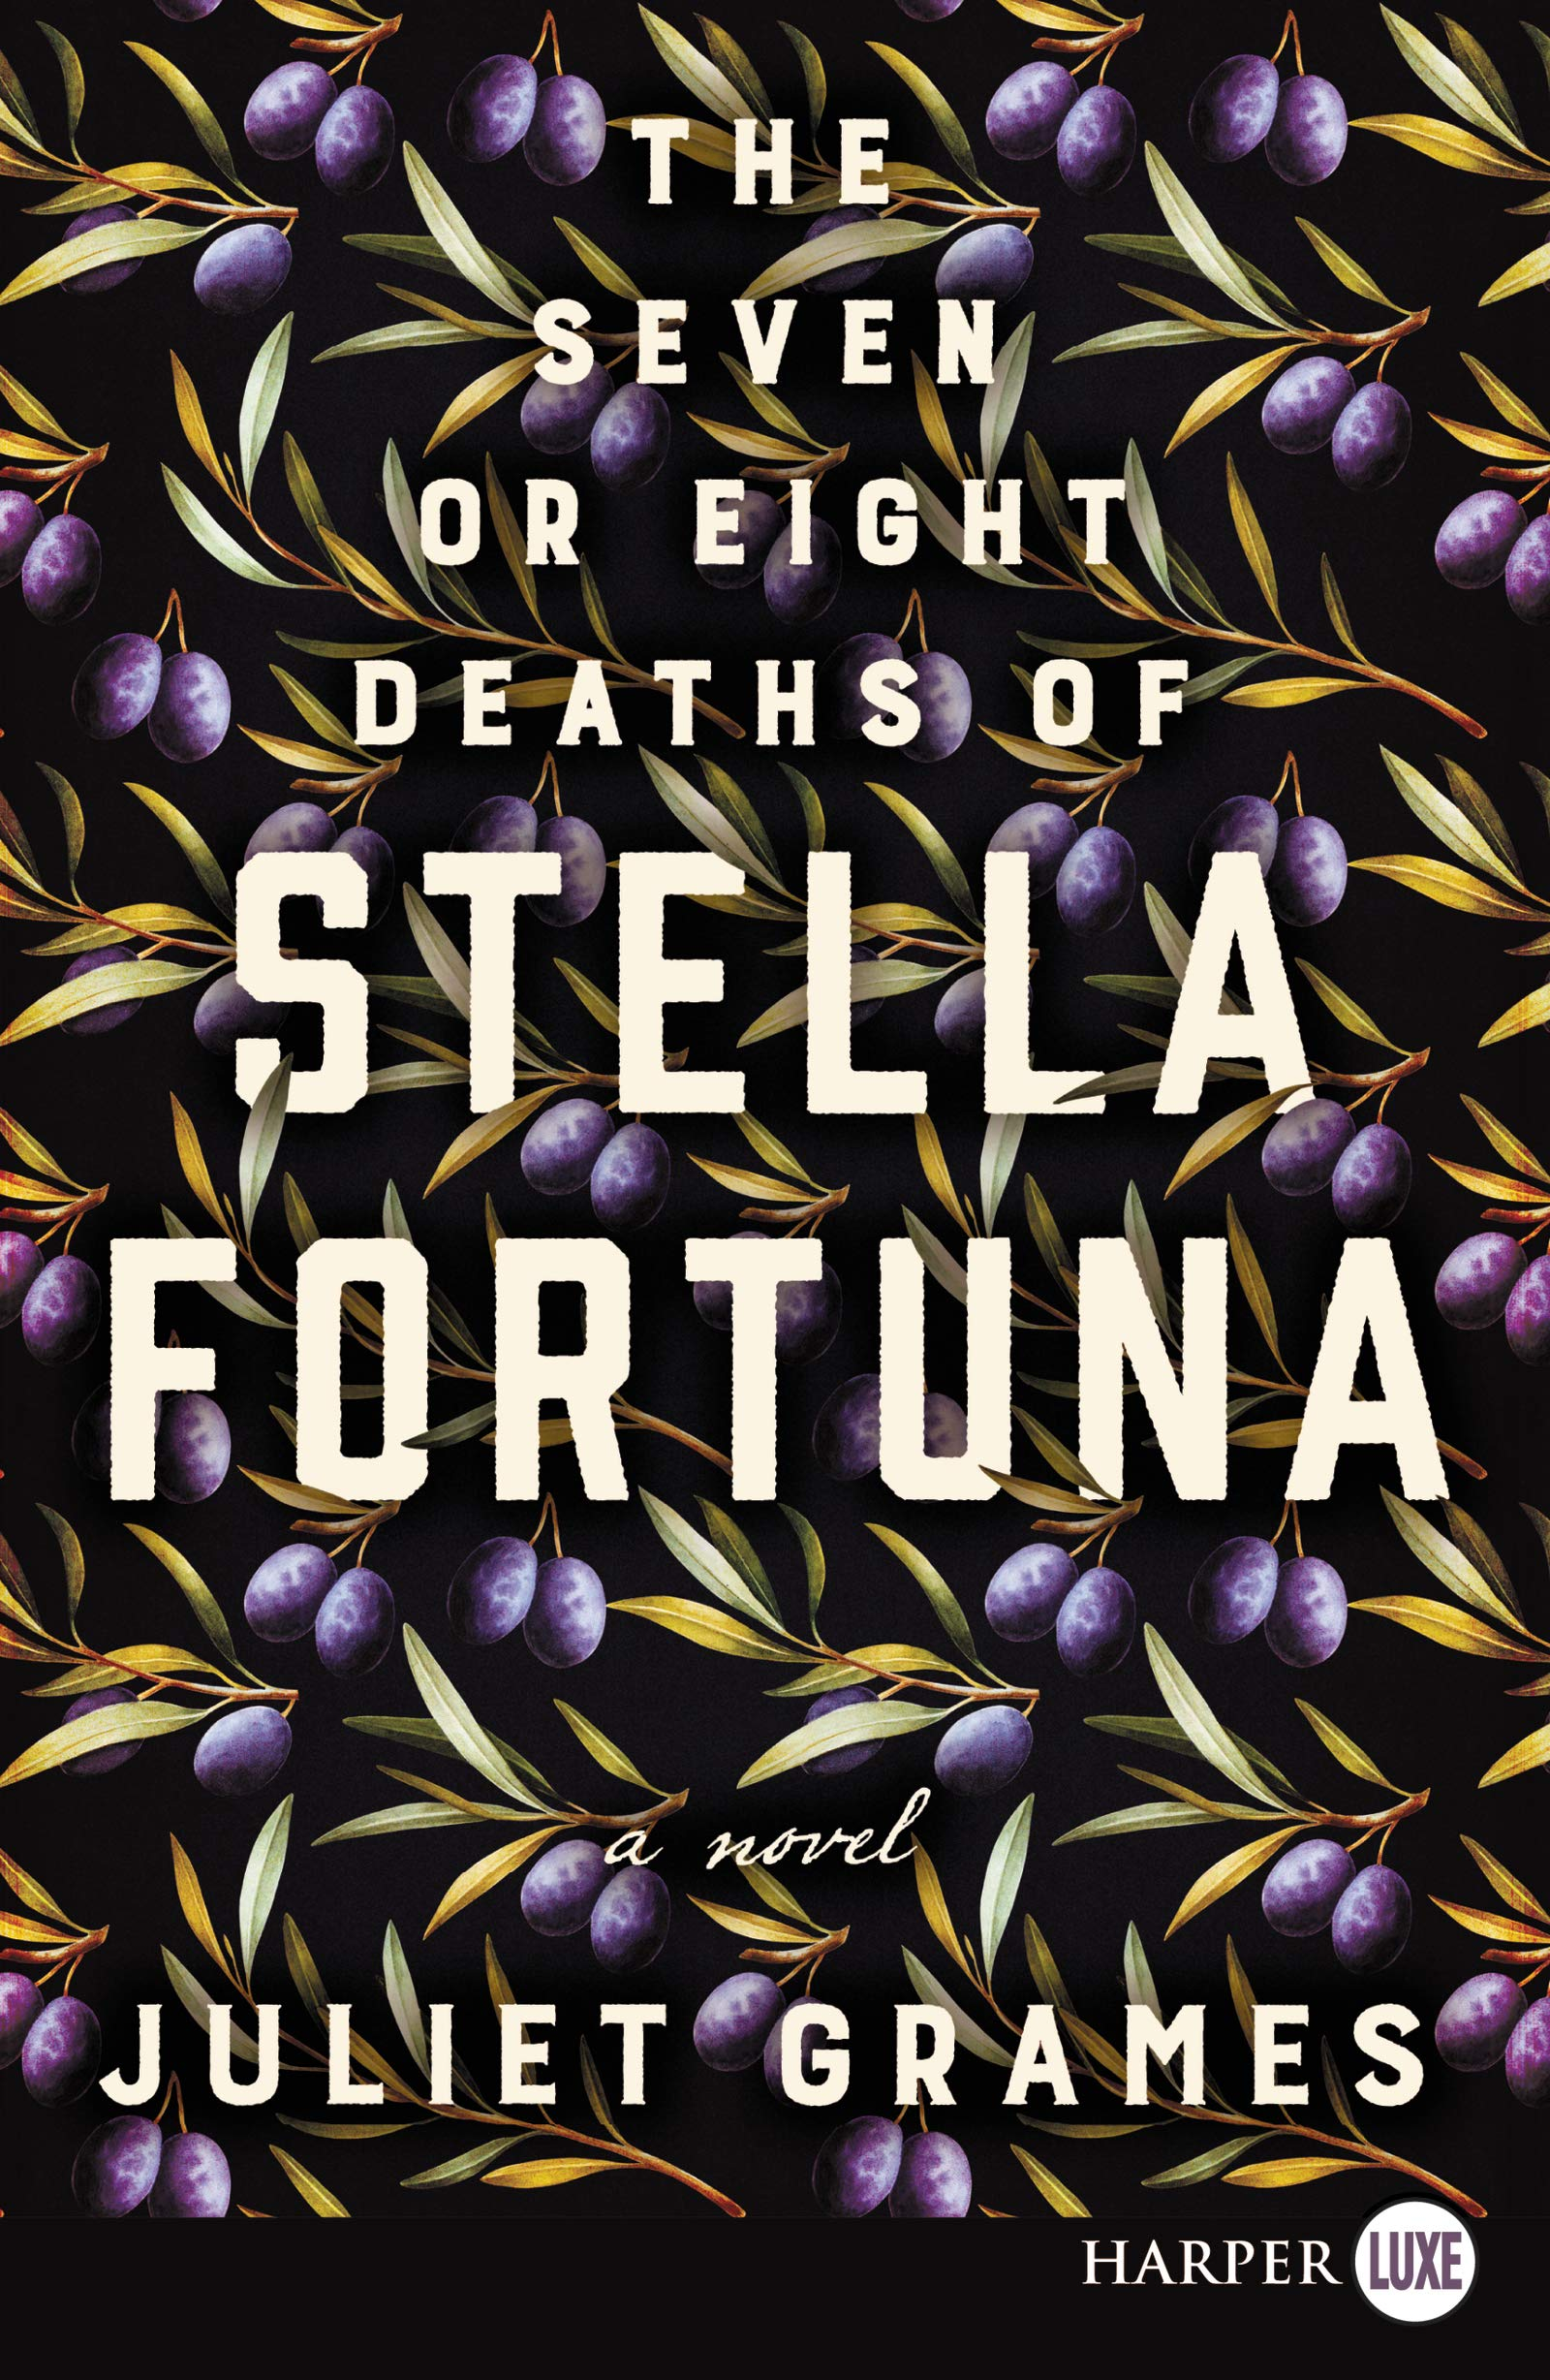 Dumbo Lit Book Club: The Seven or Eight Deaths of Stella Fortuna by Juliet Grames